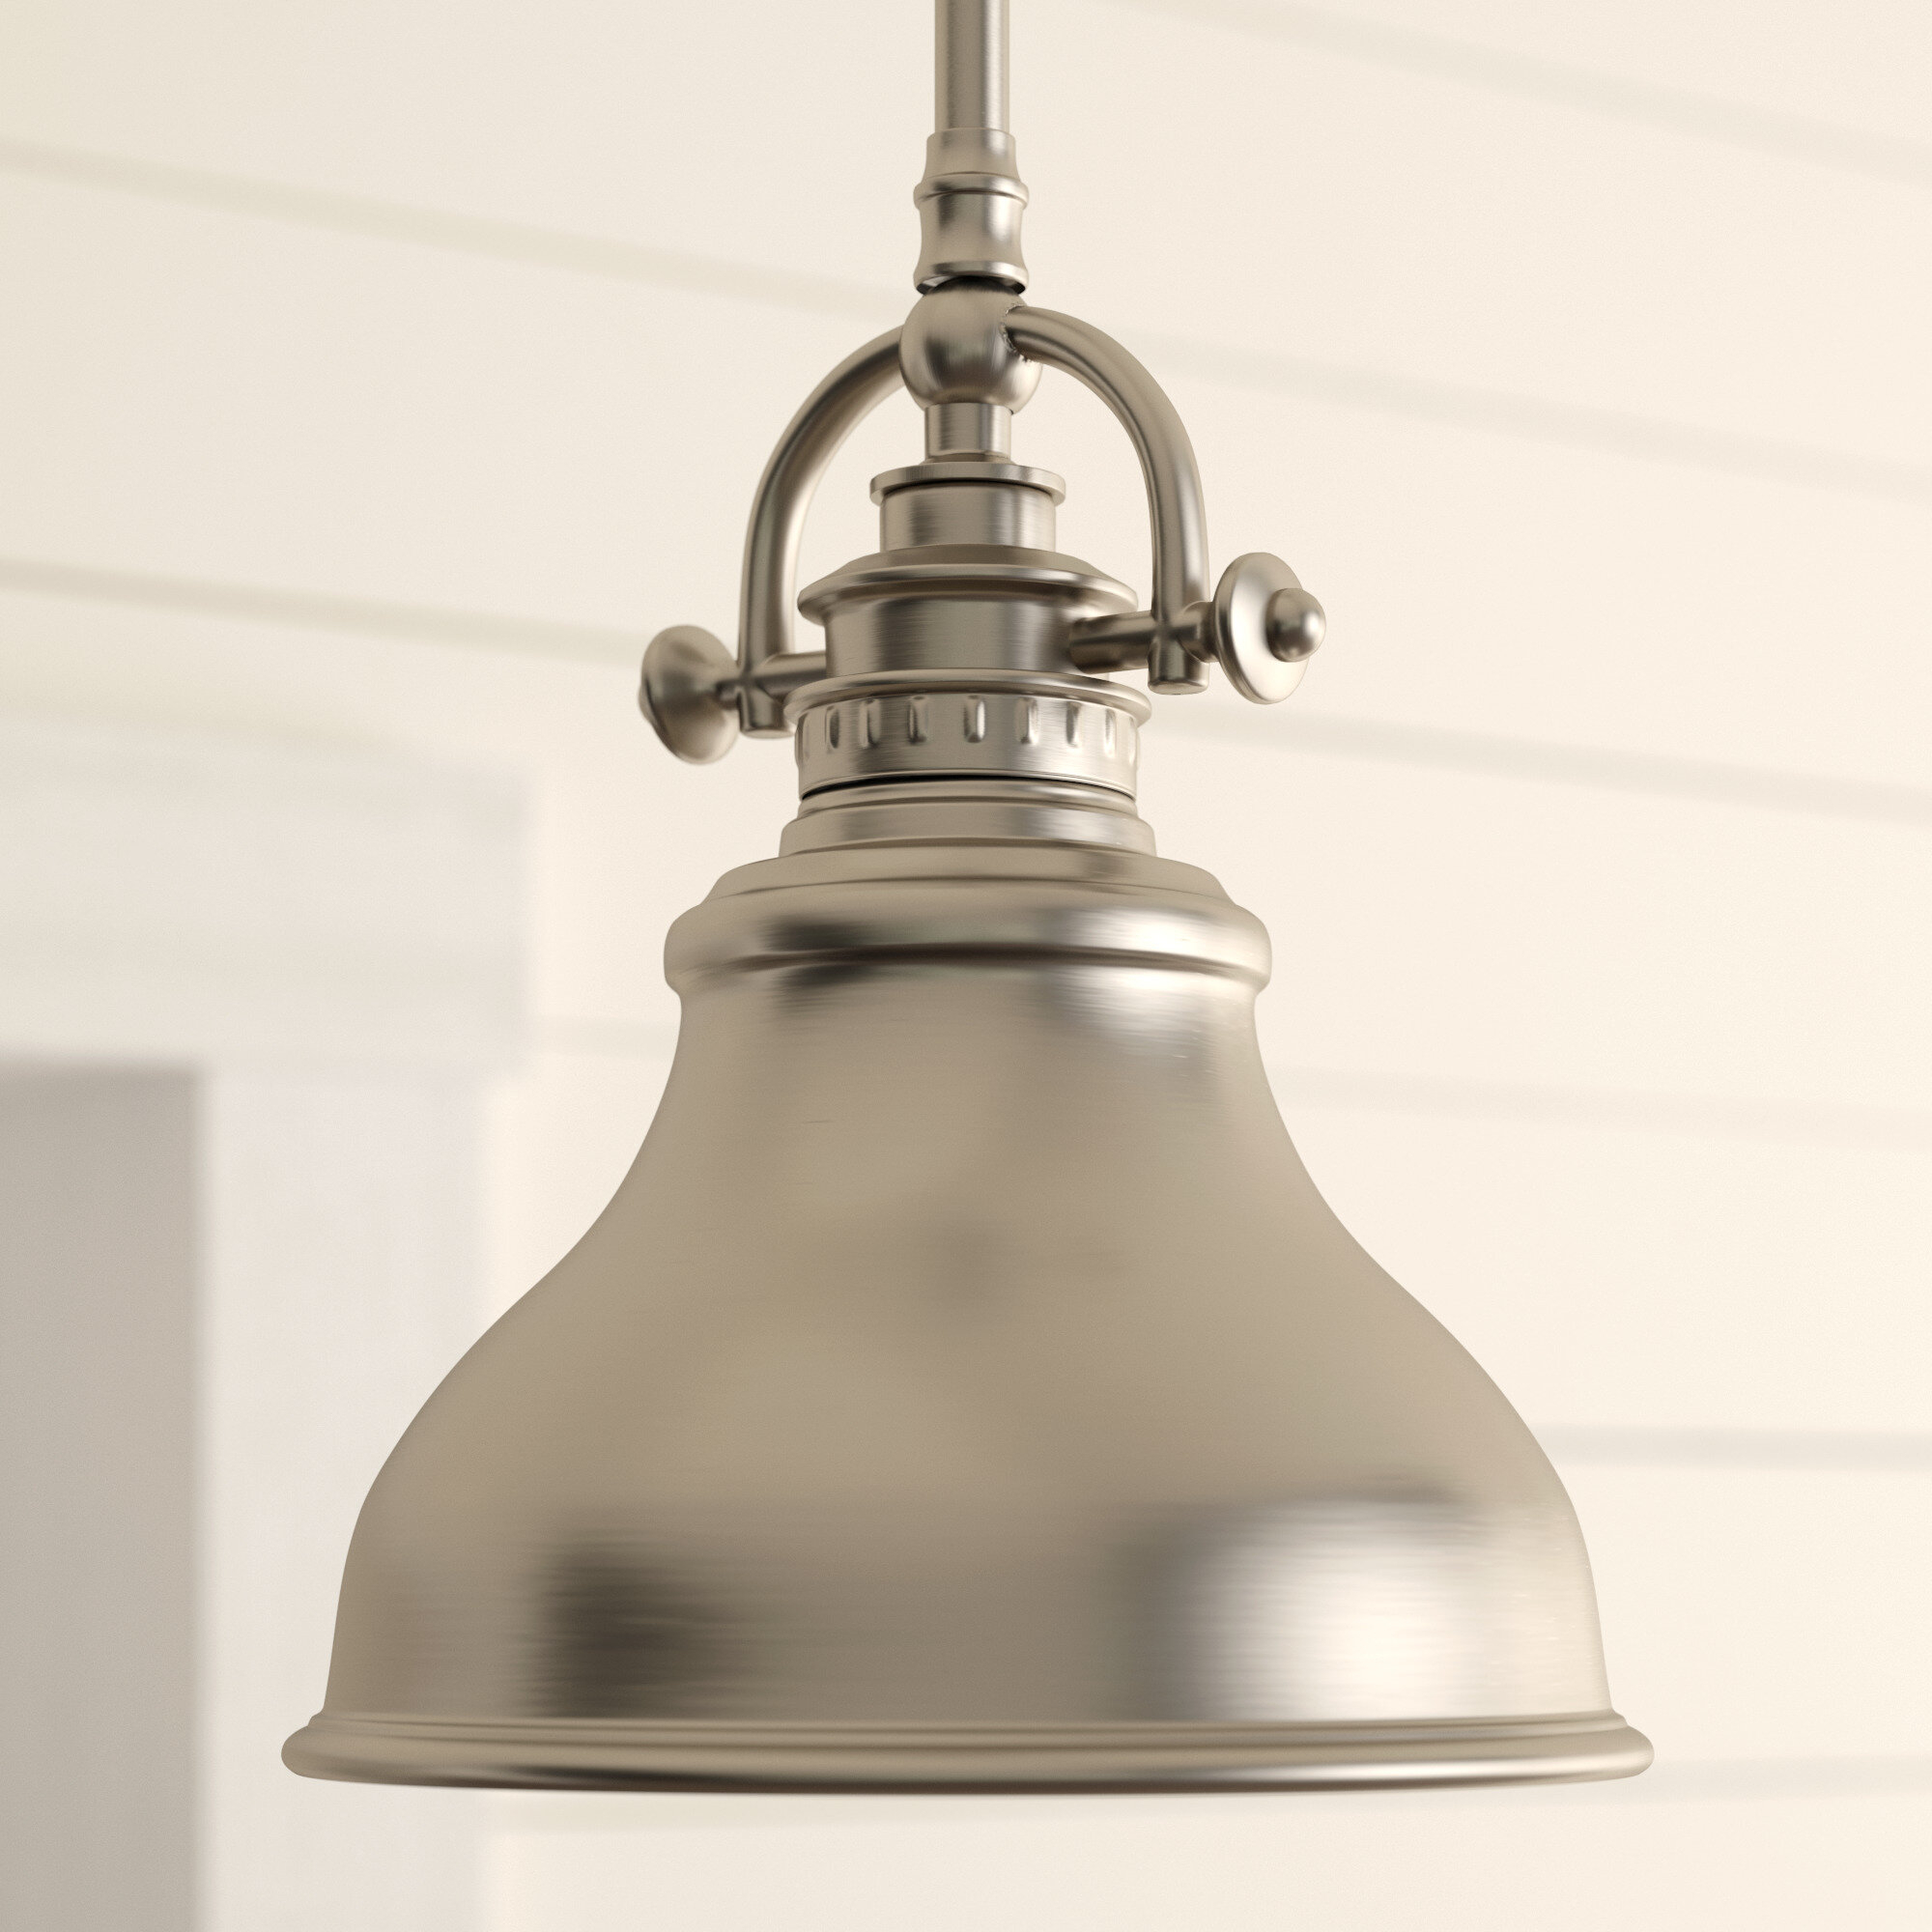 Beachcrest Home Mueller 1-Light Single Dome Pendant intended for Mueller 1-Light Single Dome Pendants (Image 5 of 30)